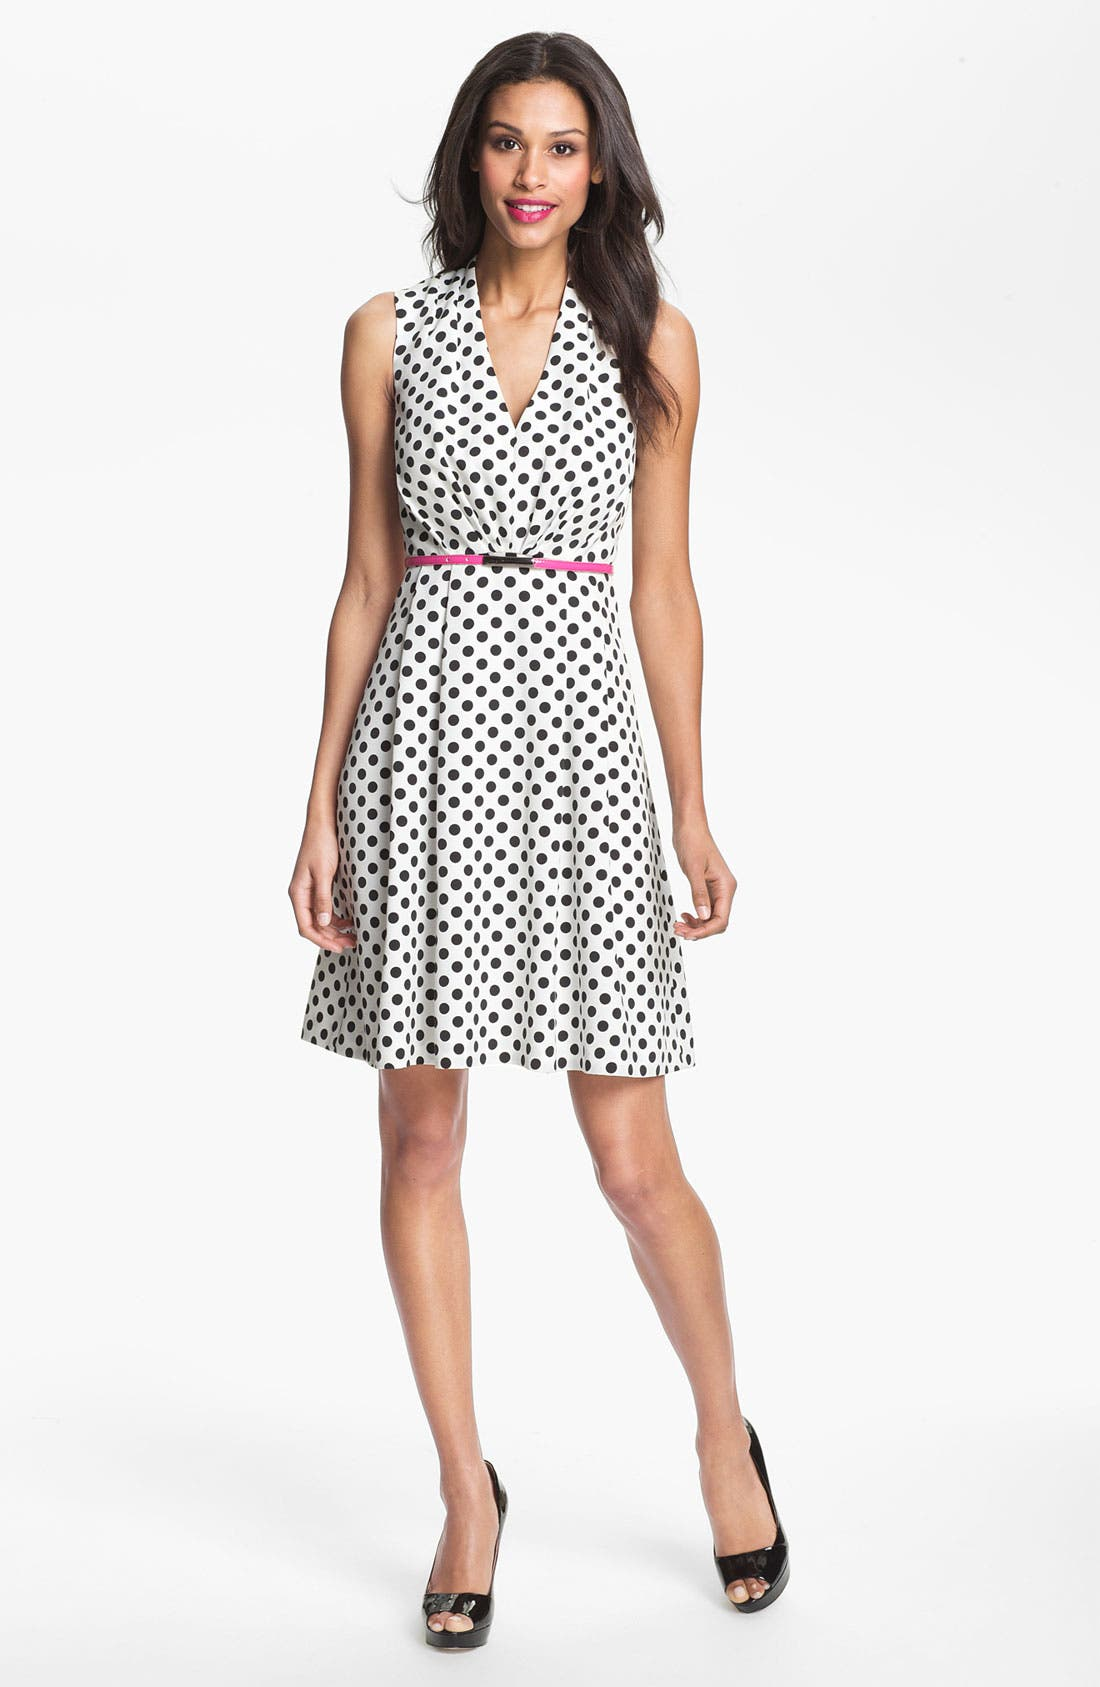 Alternate Image 1 Selected - Adrianna Papell Polka Dot Fit & Flare Dress